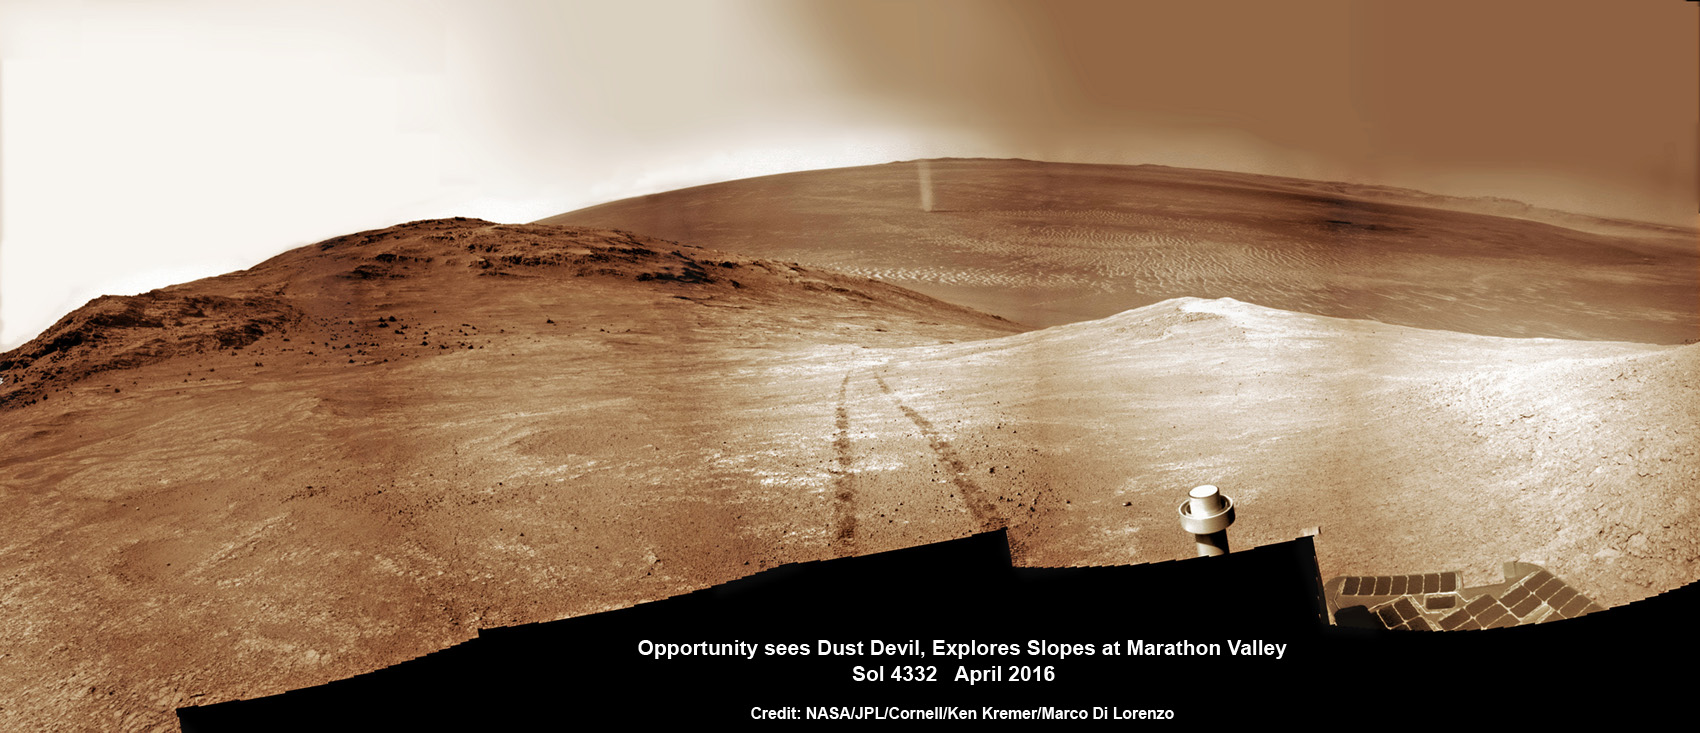 NASA's Opportunity rover discovers a beautiful Martian dust devil moving across the floor of Endeavour crater as wheel tracks show robots path today exploring the steepest ever slopes of the 13 year long mission, in search of water altered minerals at Knudsen Ridge inside Marathon Valley on 1 April 2016. This navcam camera photo mosaic was assembled from raw images taken on Sol 4332 (1 April 2016) and colorized. Credit: NASA/JPL/Cornell/ Ken Kremer/kenkremer.com/Marco Di Lorenzo